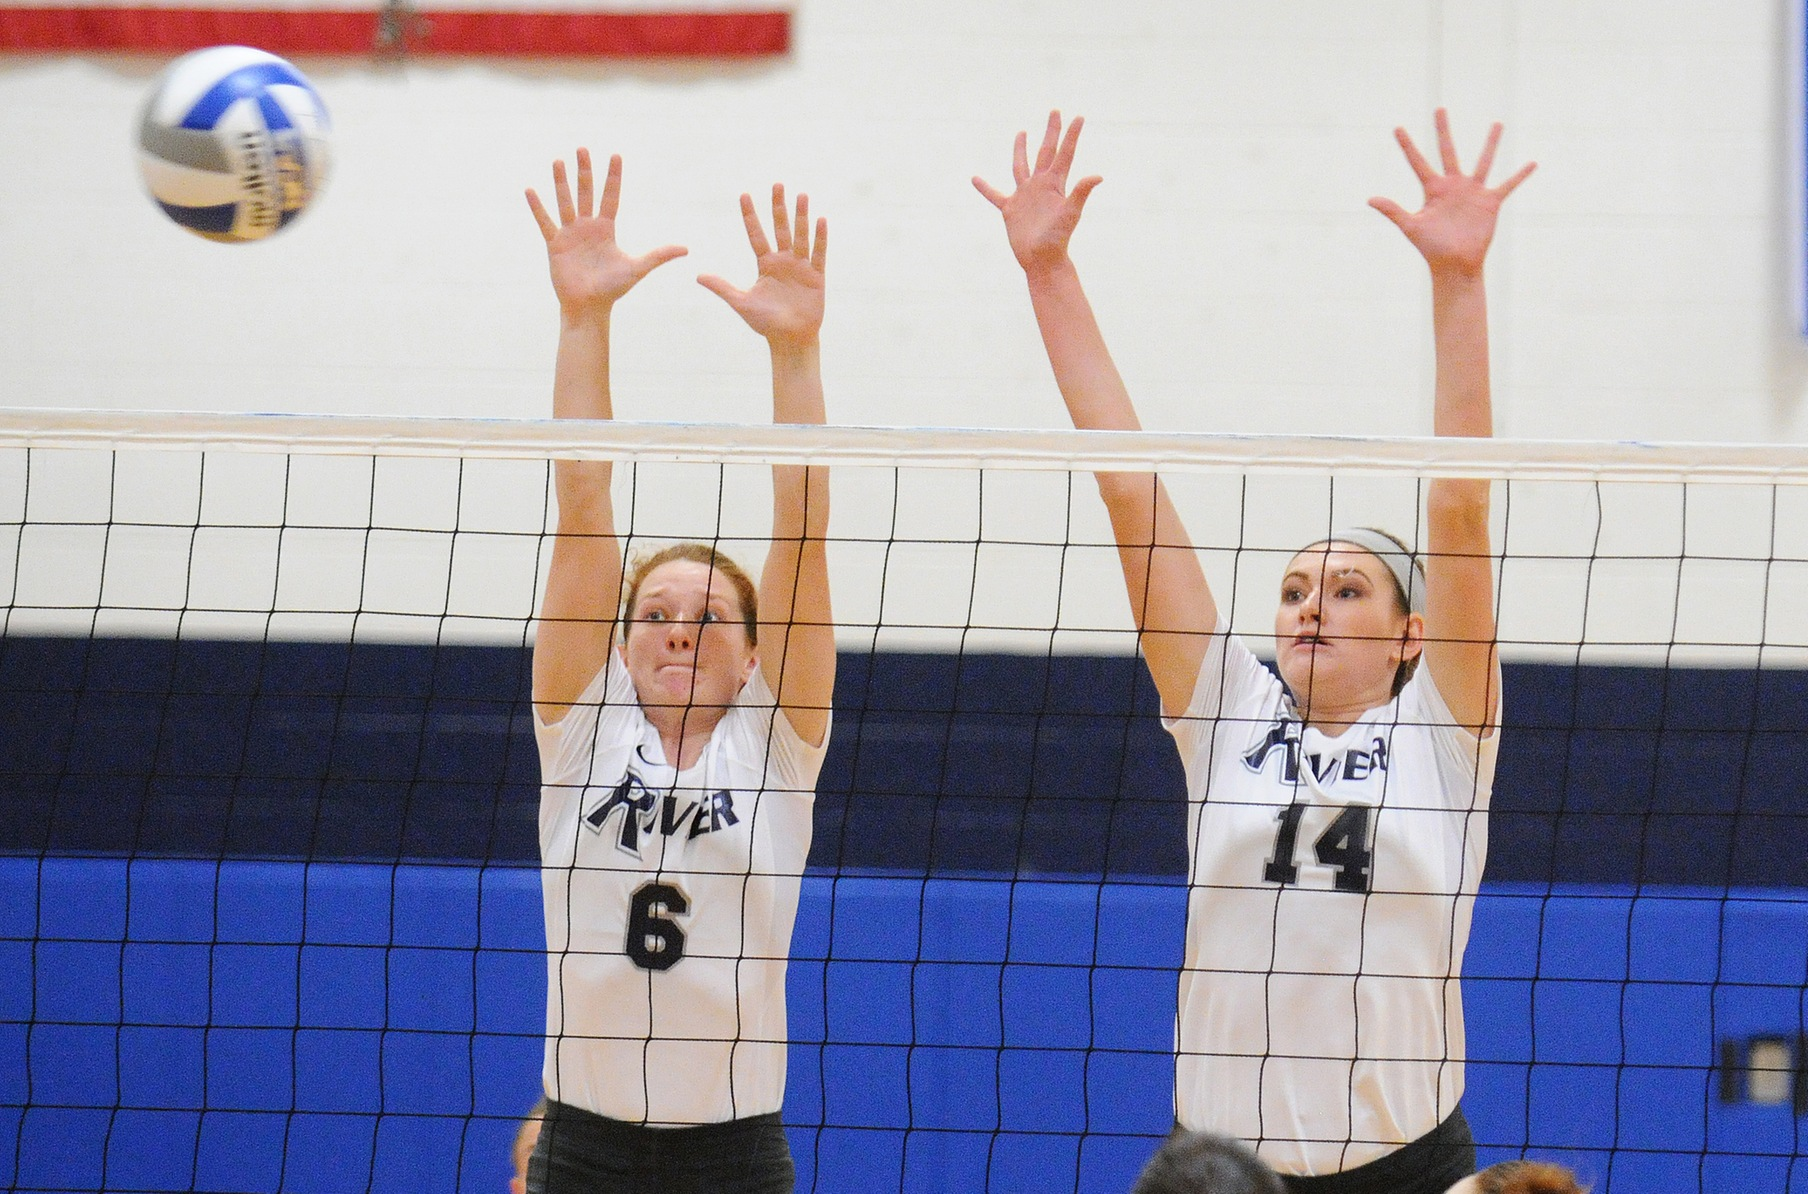 Women's Volleyball: Macken, Collins guide Raiders to 3-0 win over UNE